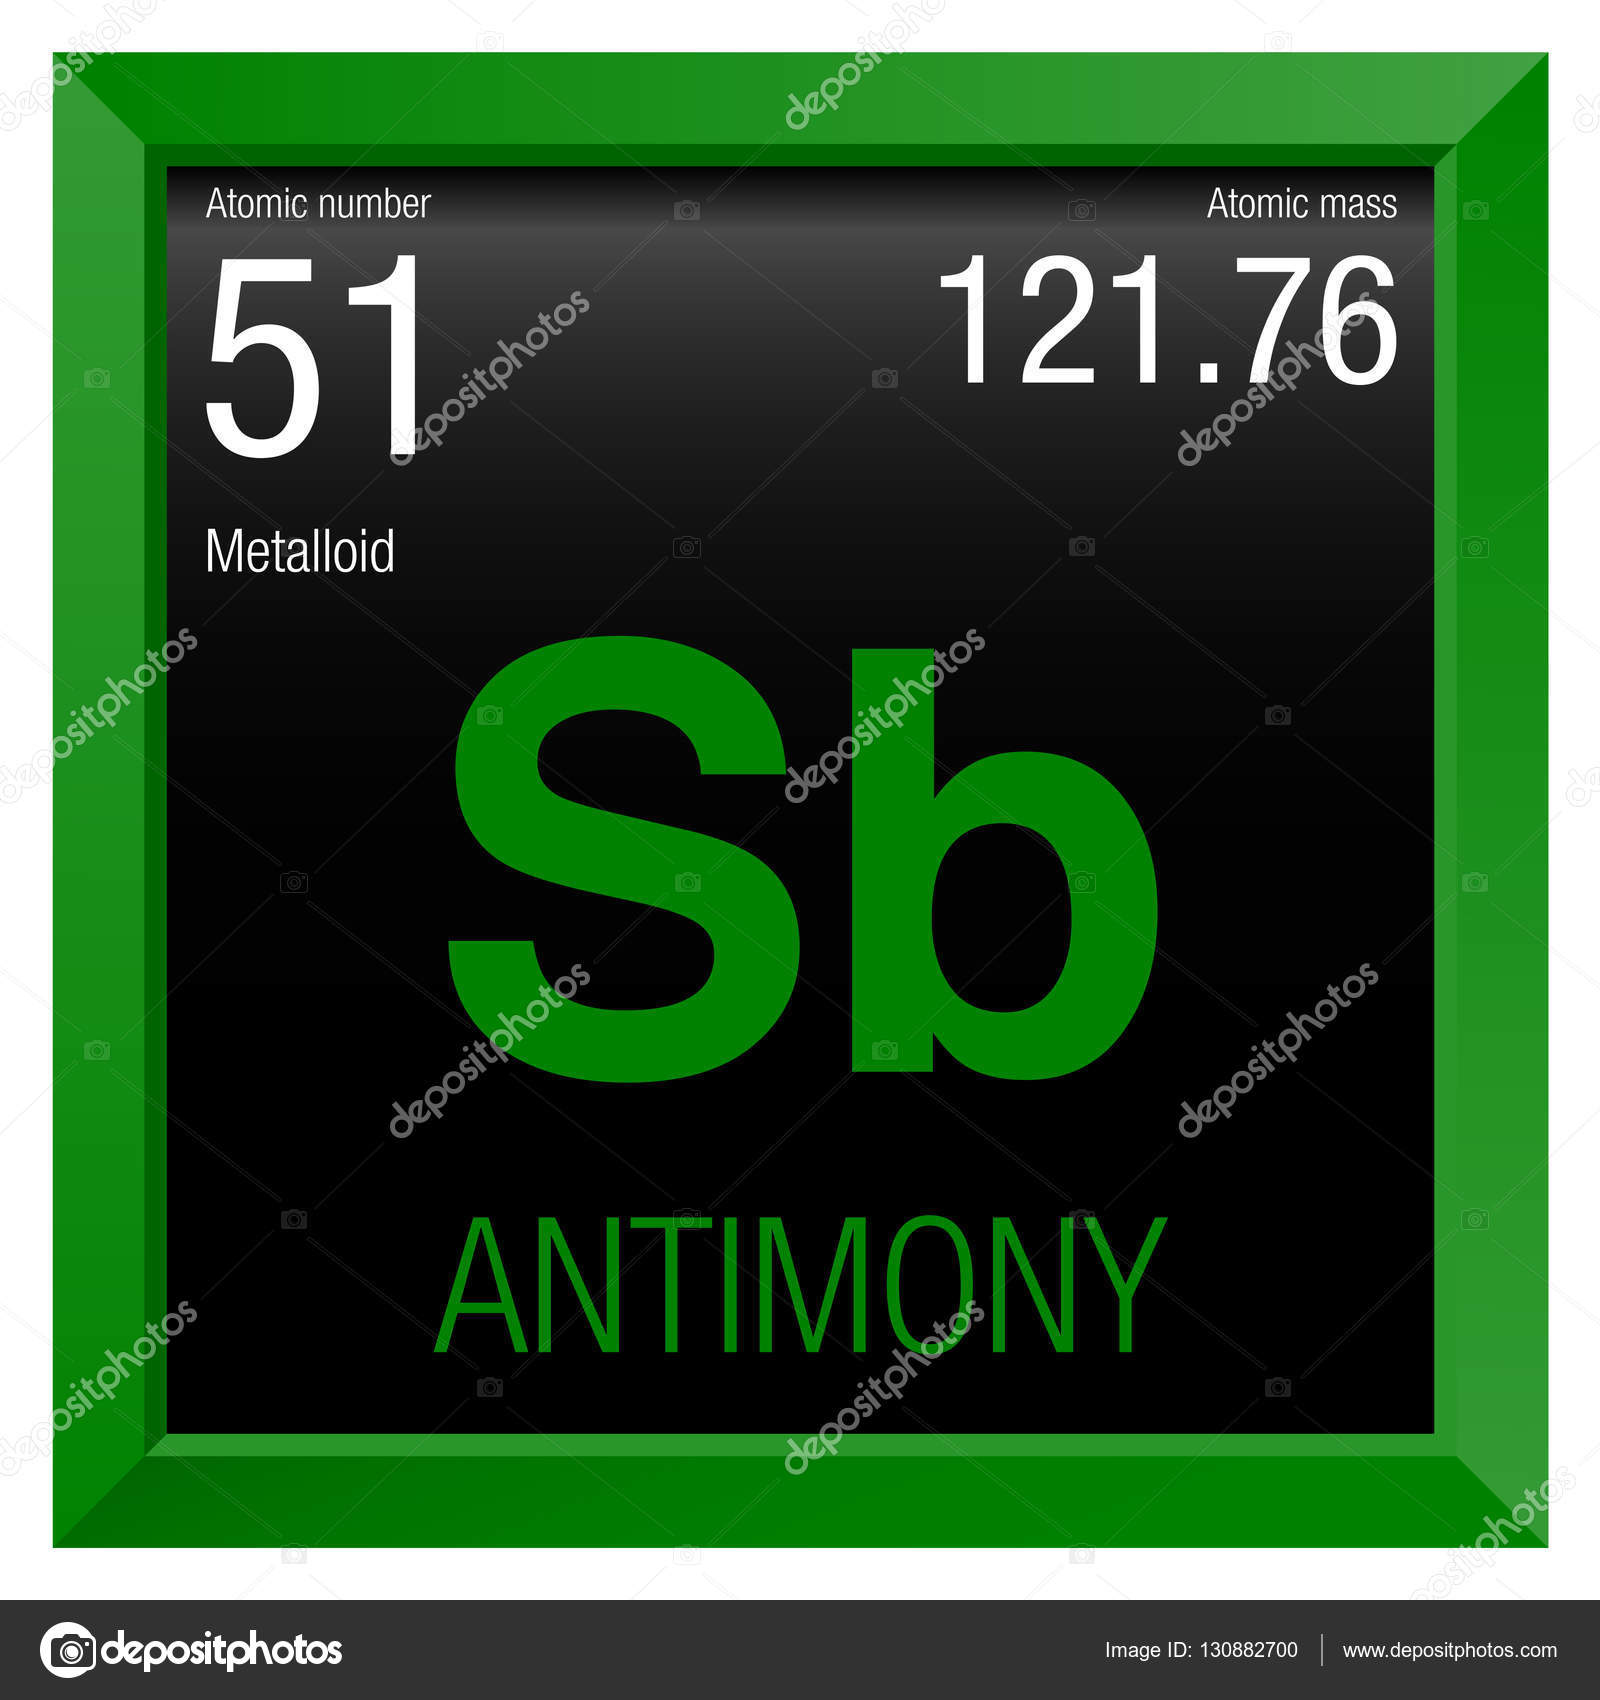 Antimony on the periodic table choice image periodic table of antimony symbol element number 51 of the periodic table of the urtaz Gallery